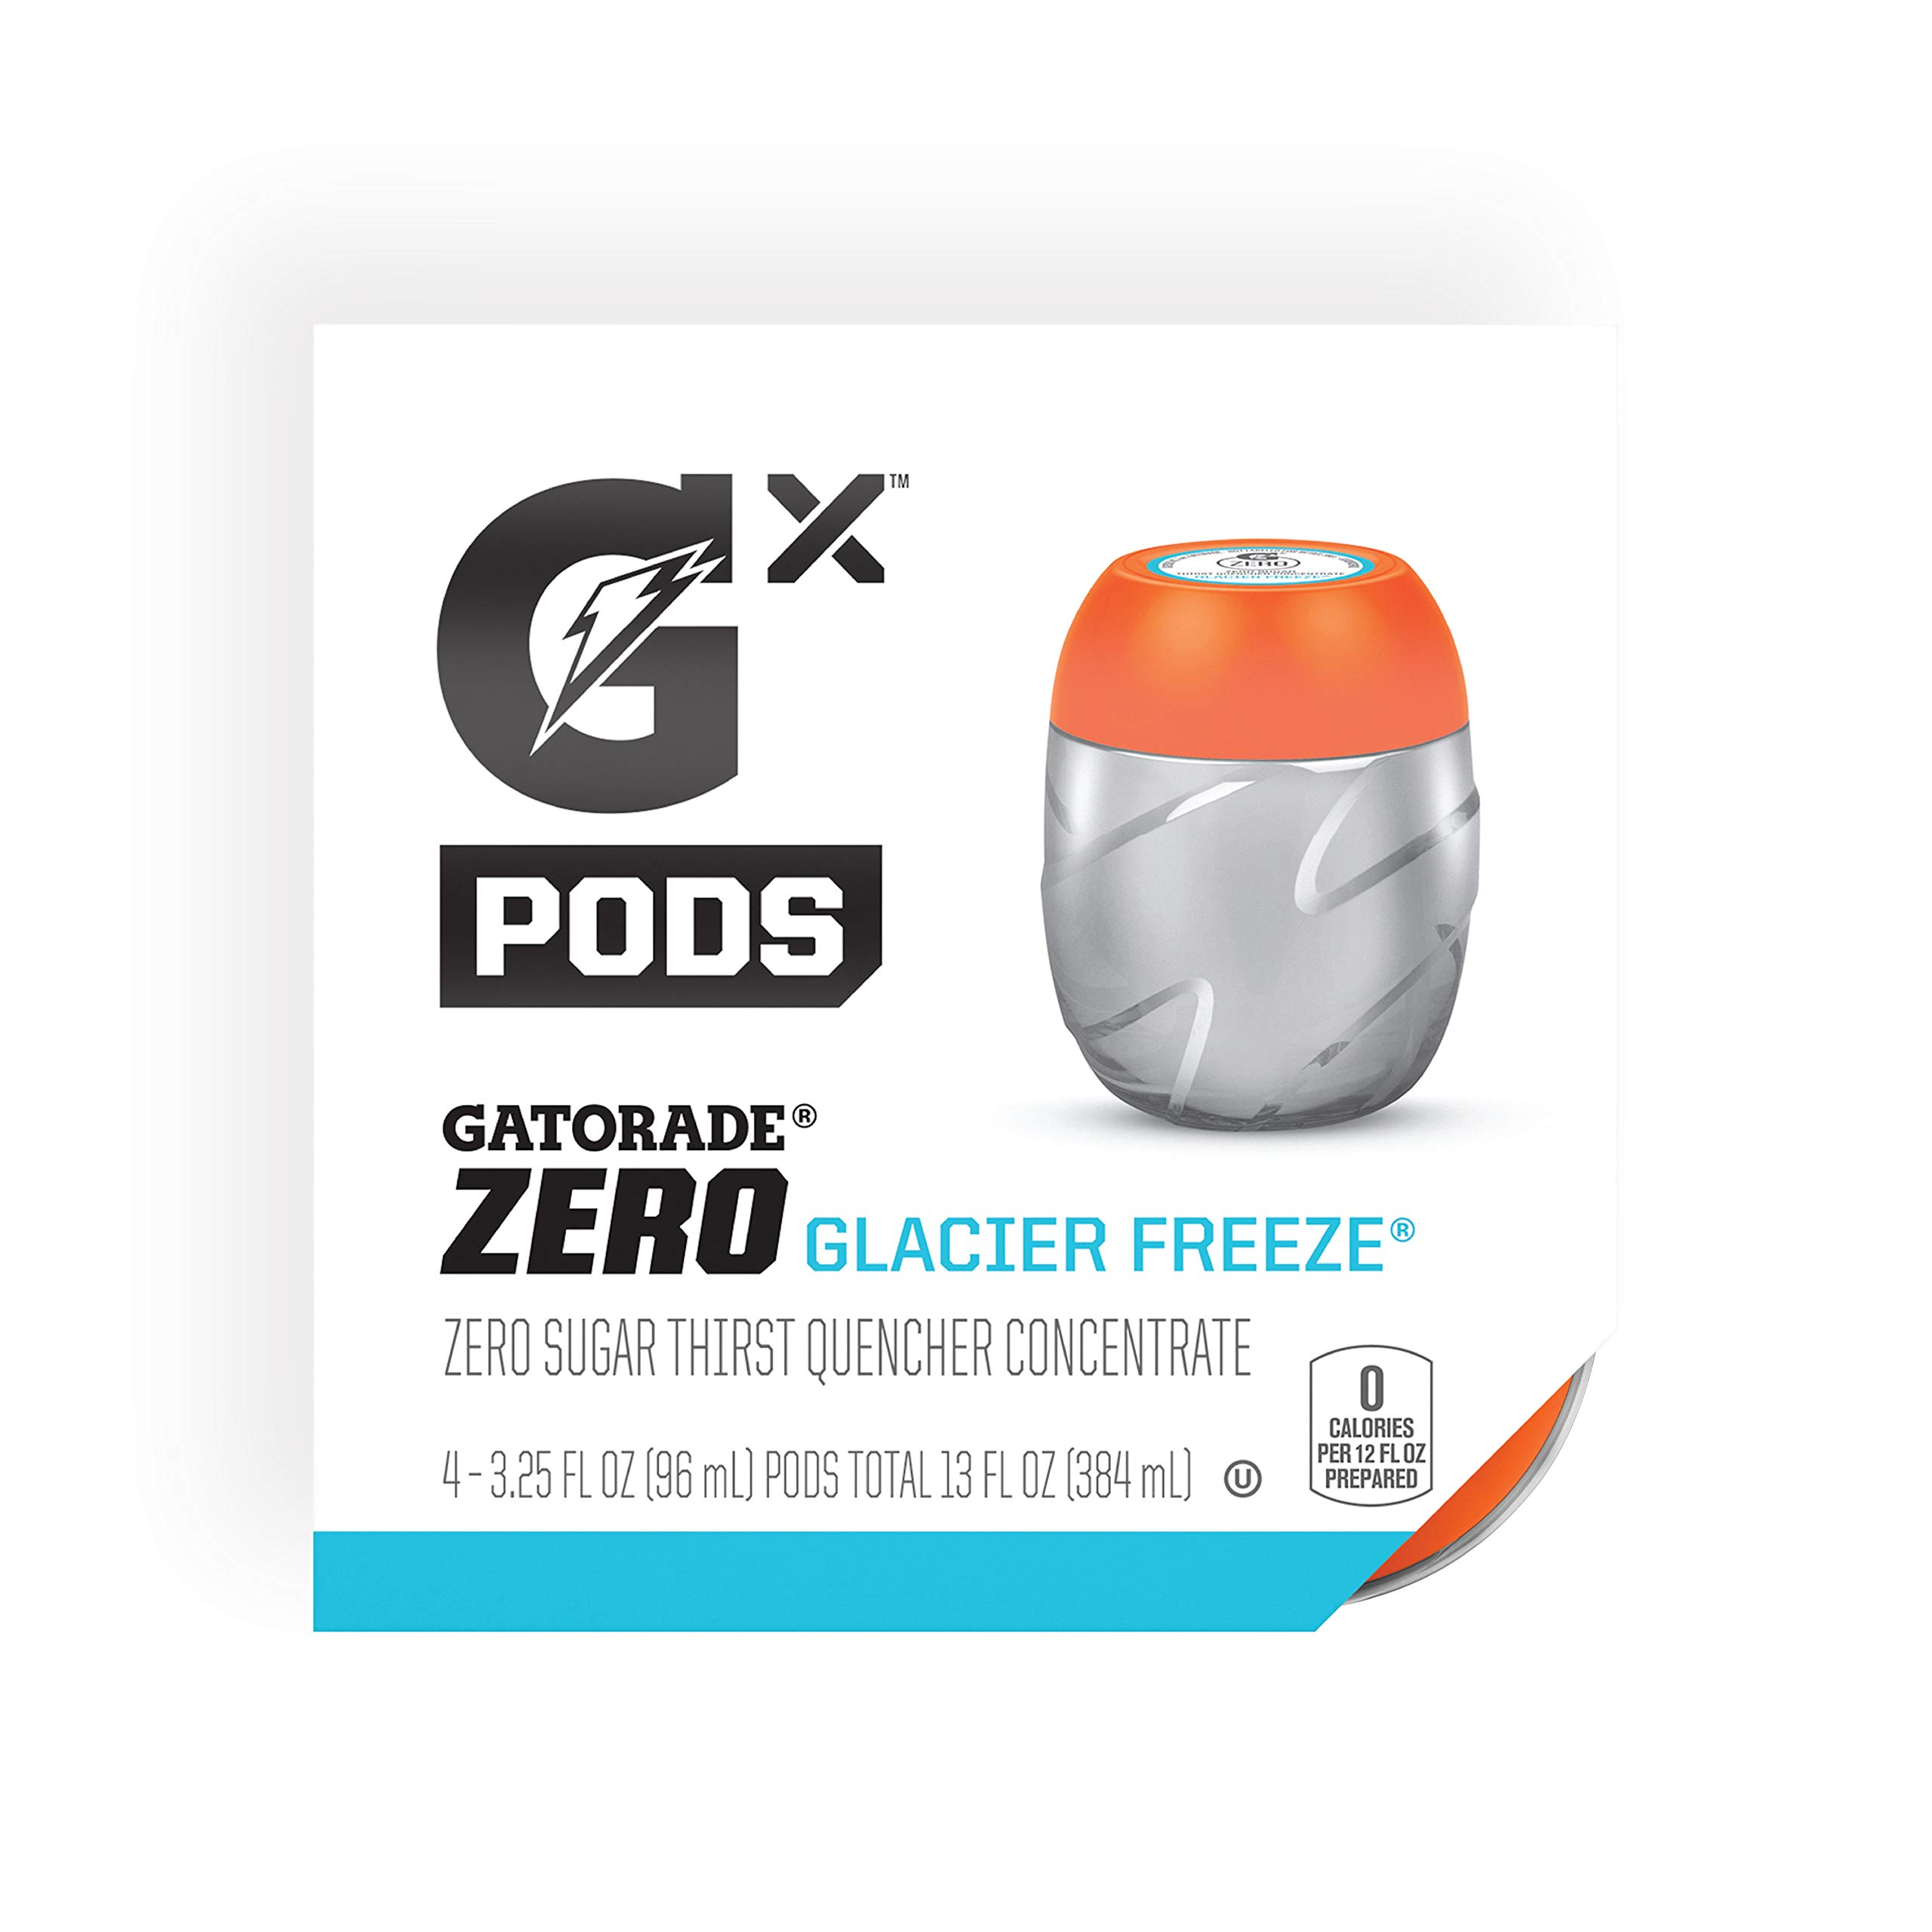 Gatorade Gx Hydration System - 30 ounce Bottles and Pods